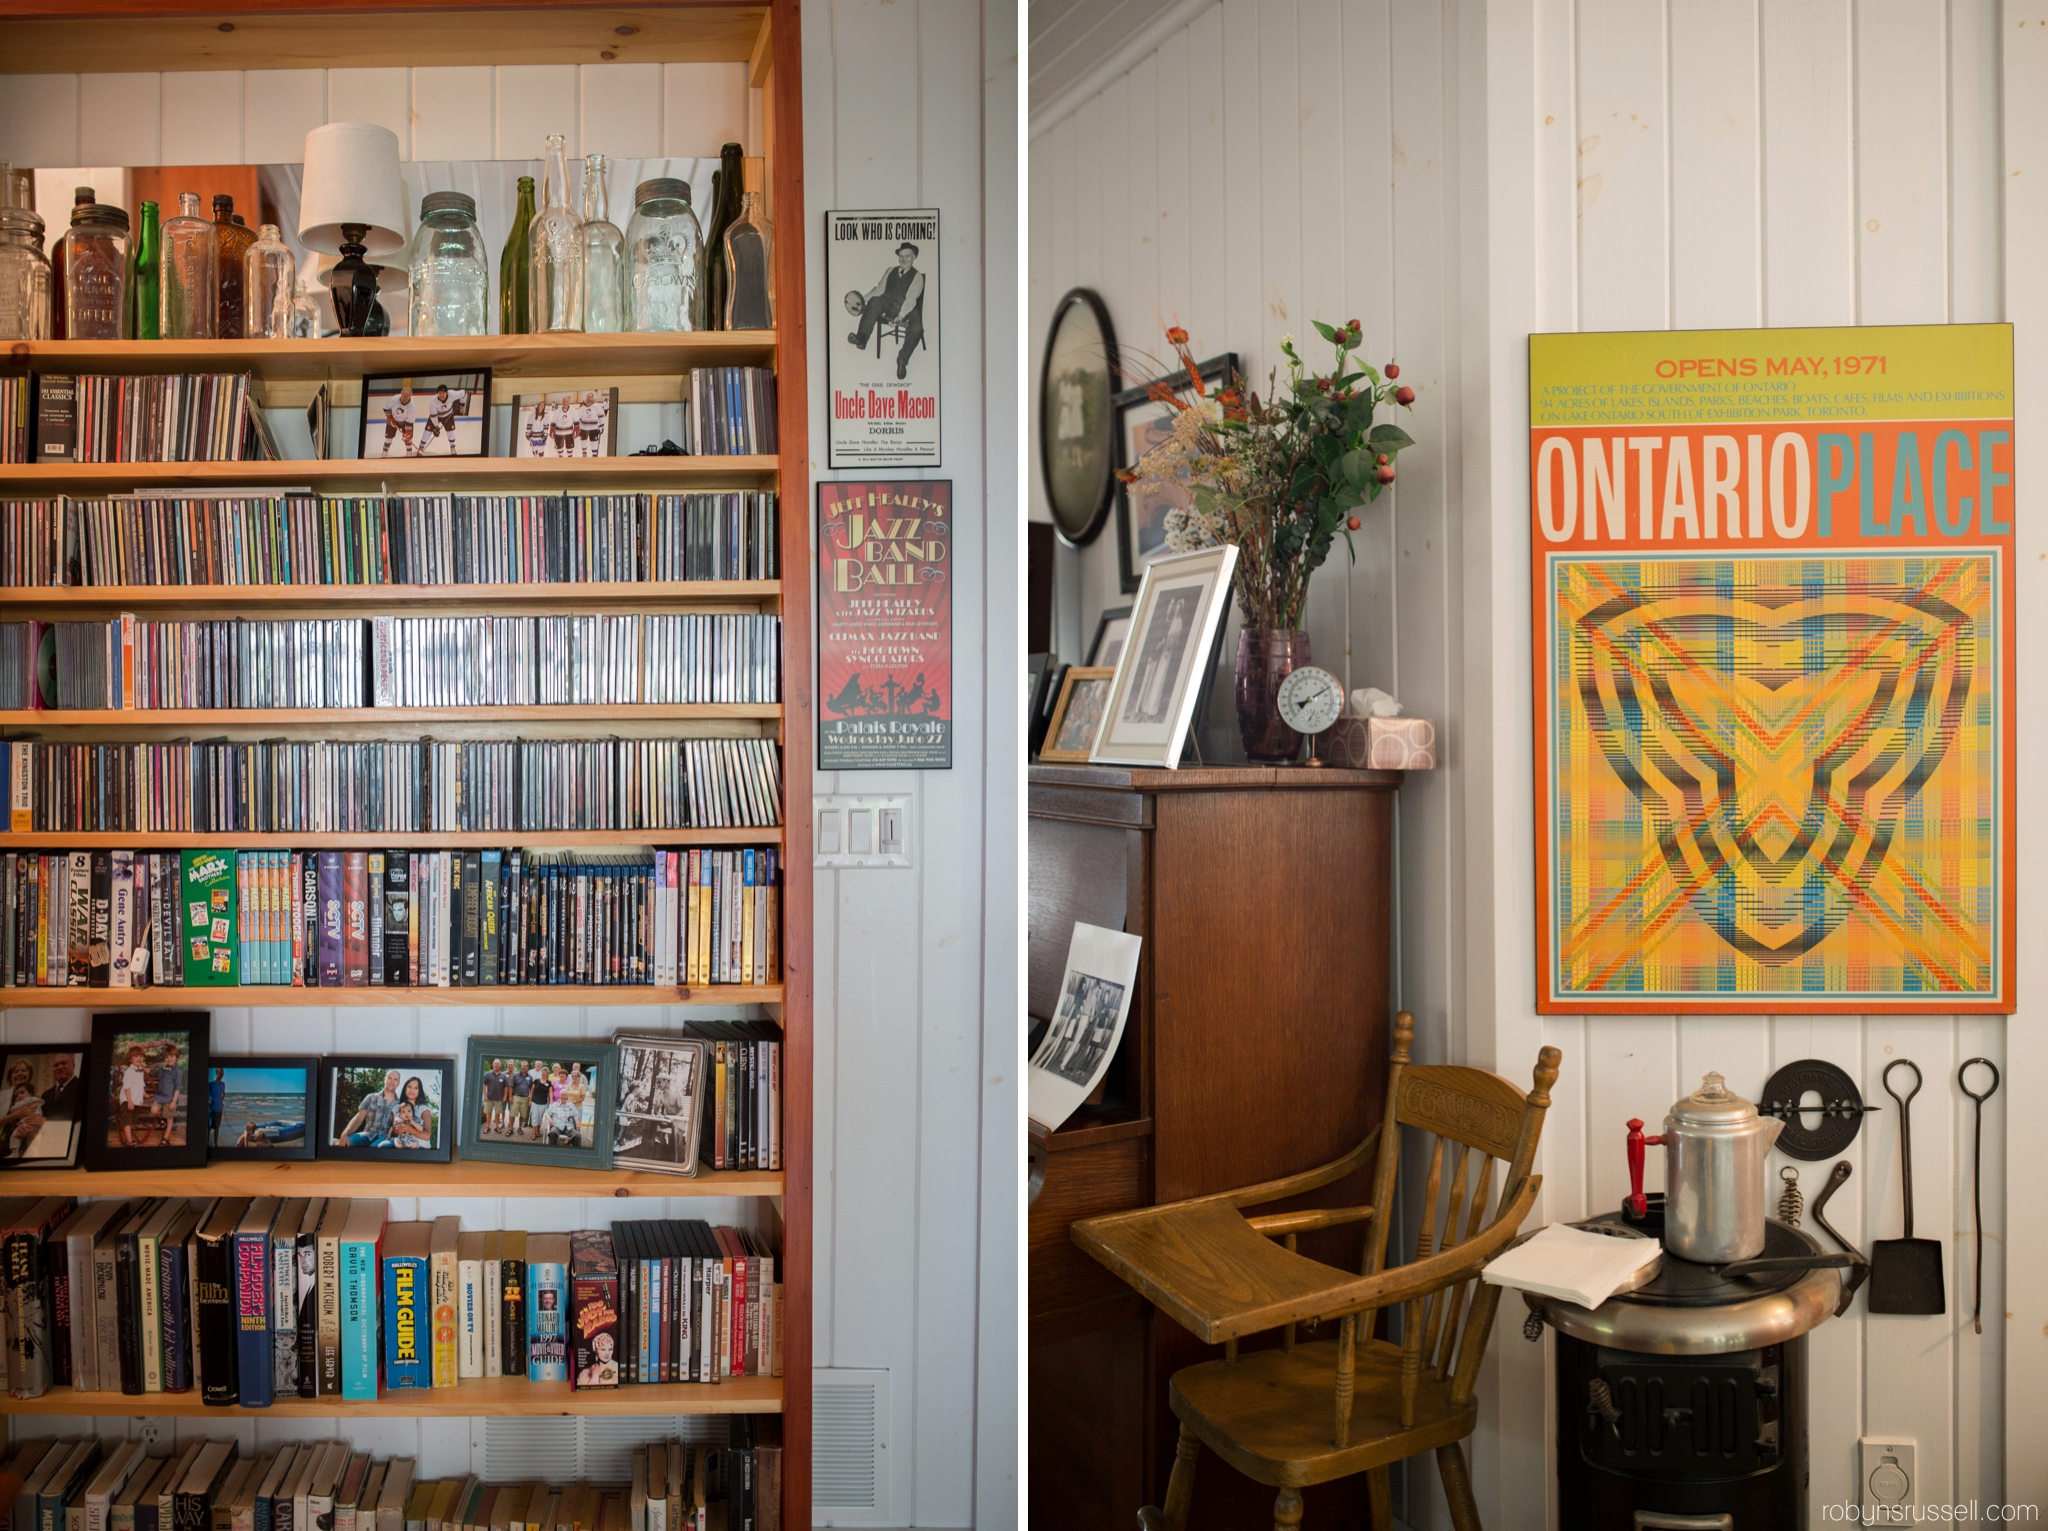 16-cottage-books-posters-ontario-place.jpg